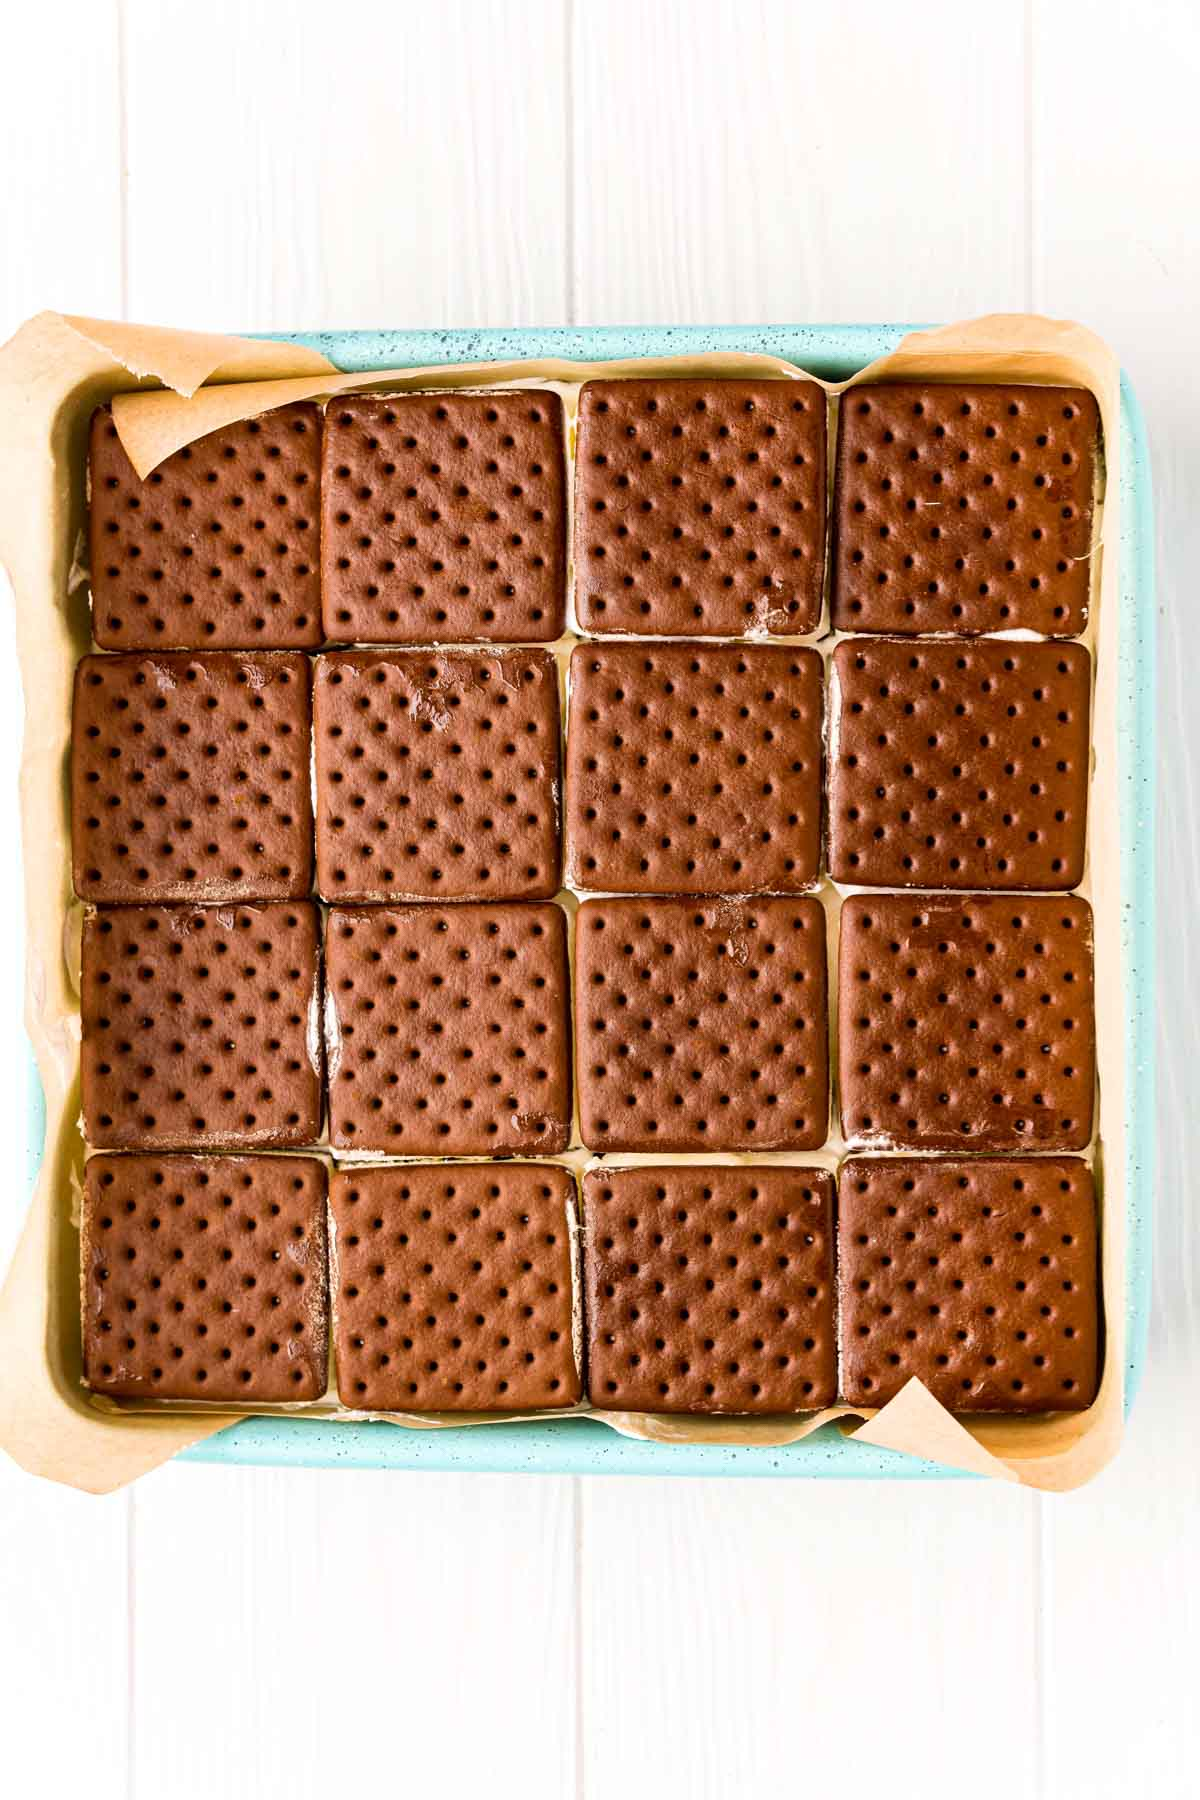 ice cream sandwiches in a square pan